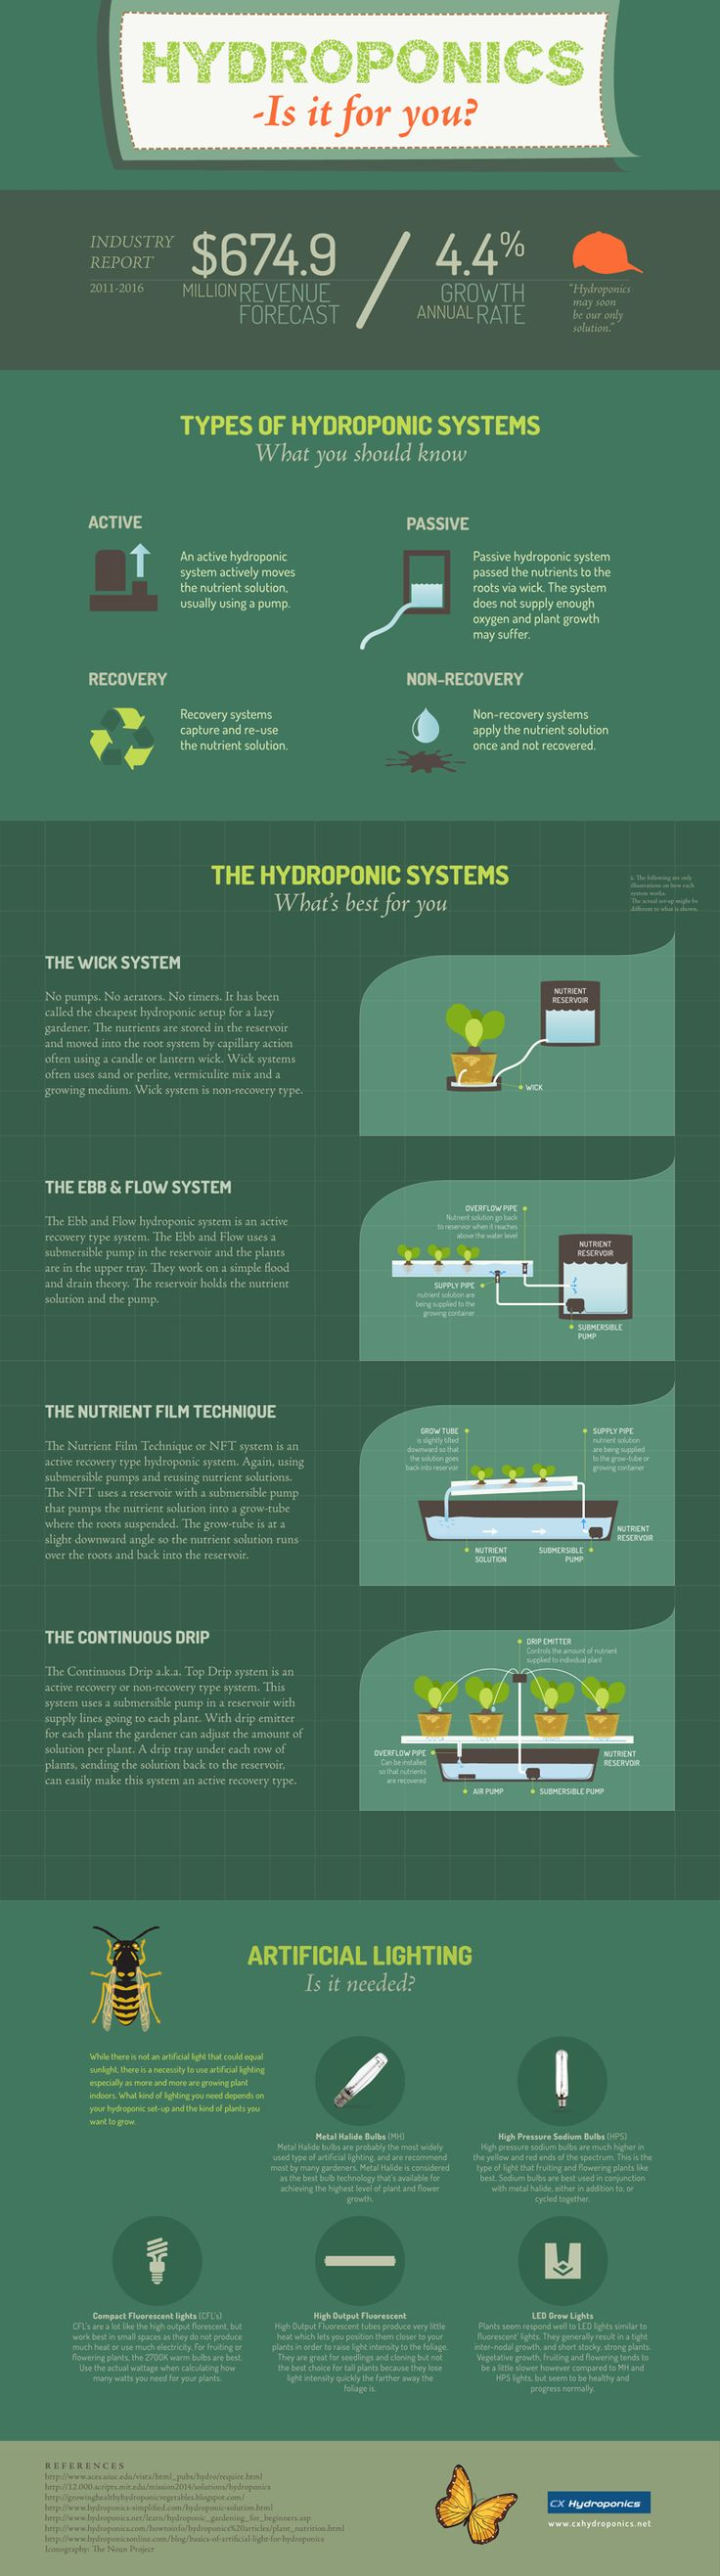 Hydroponics Infographic - Is it for you? http://hubpages.com/living/All-You-Need-To-Know-About-Hydroponics